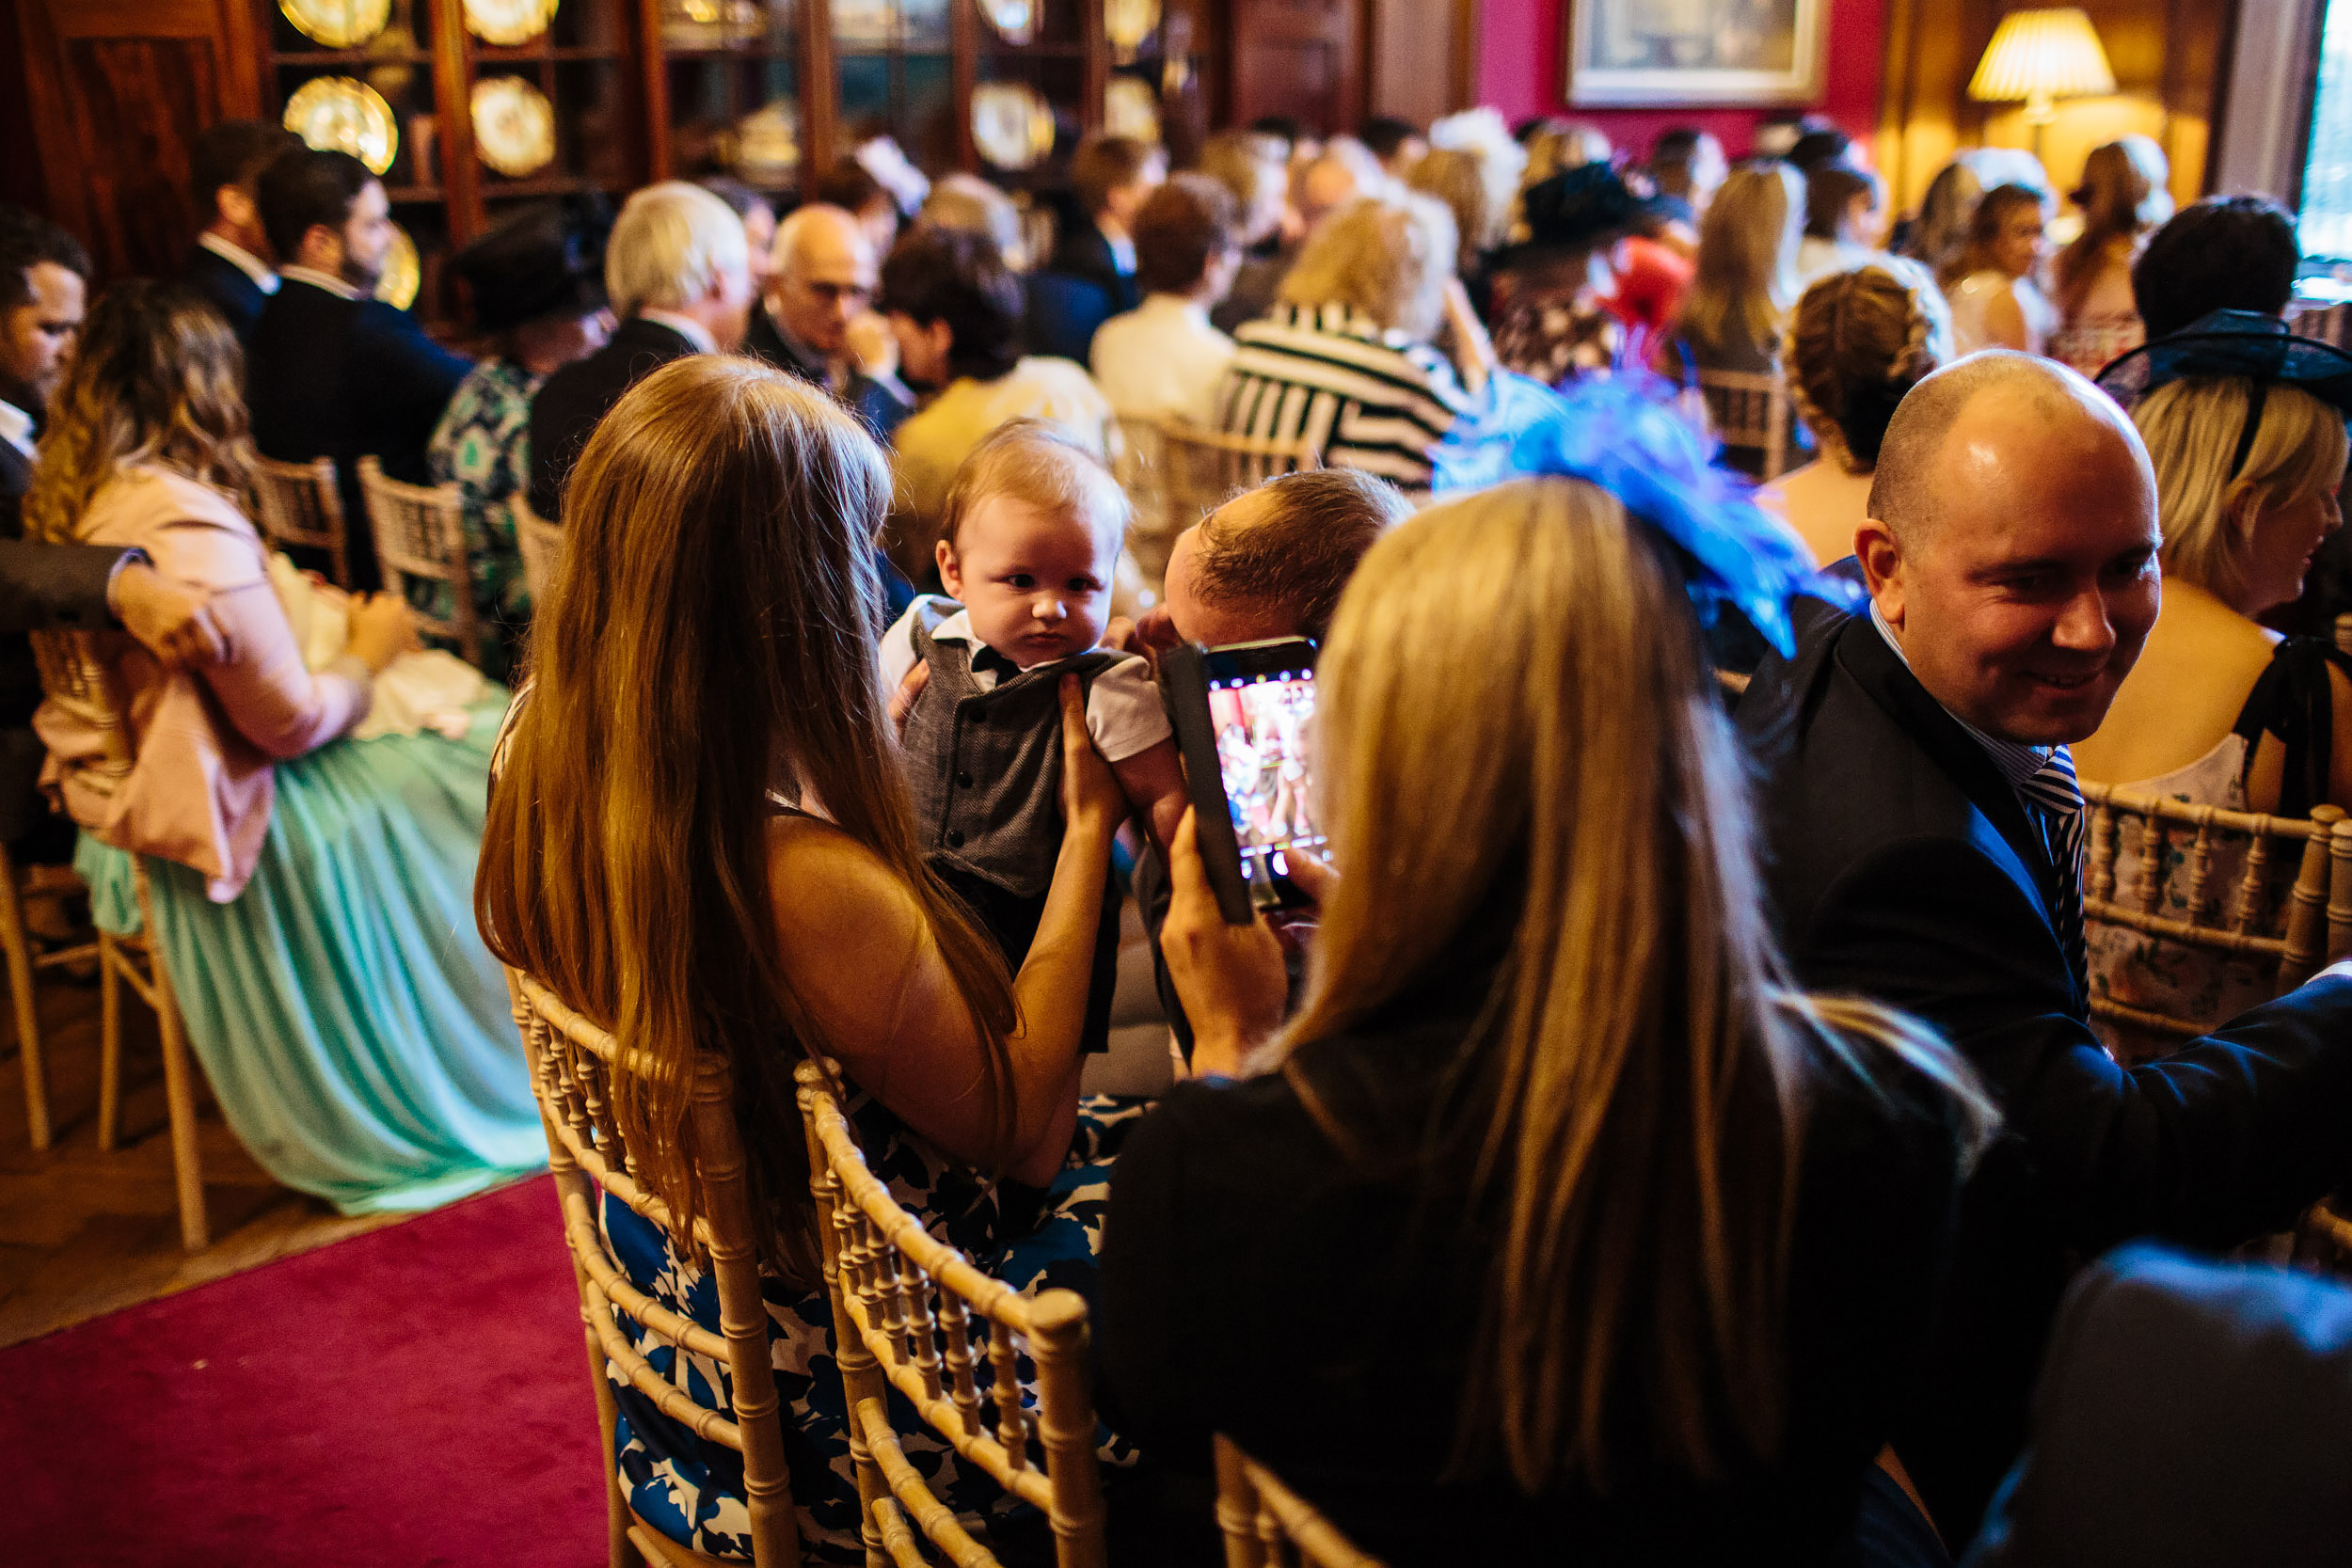 Wedding guests take photo of a baby at Thornton Manor Cheshire